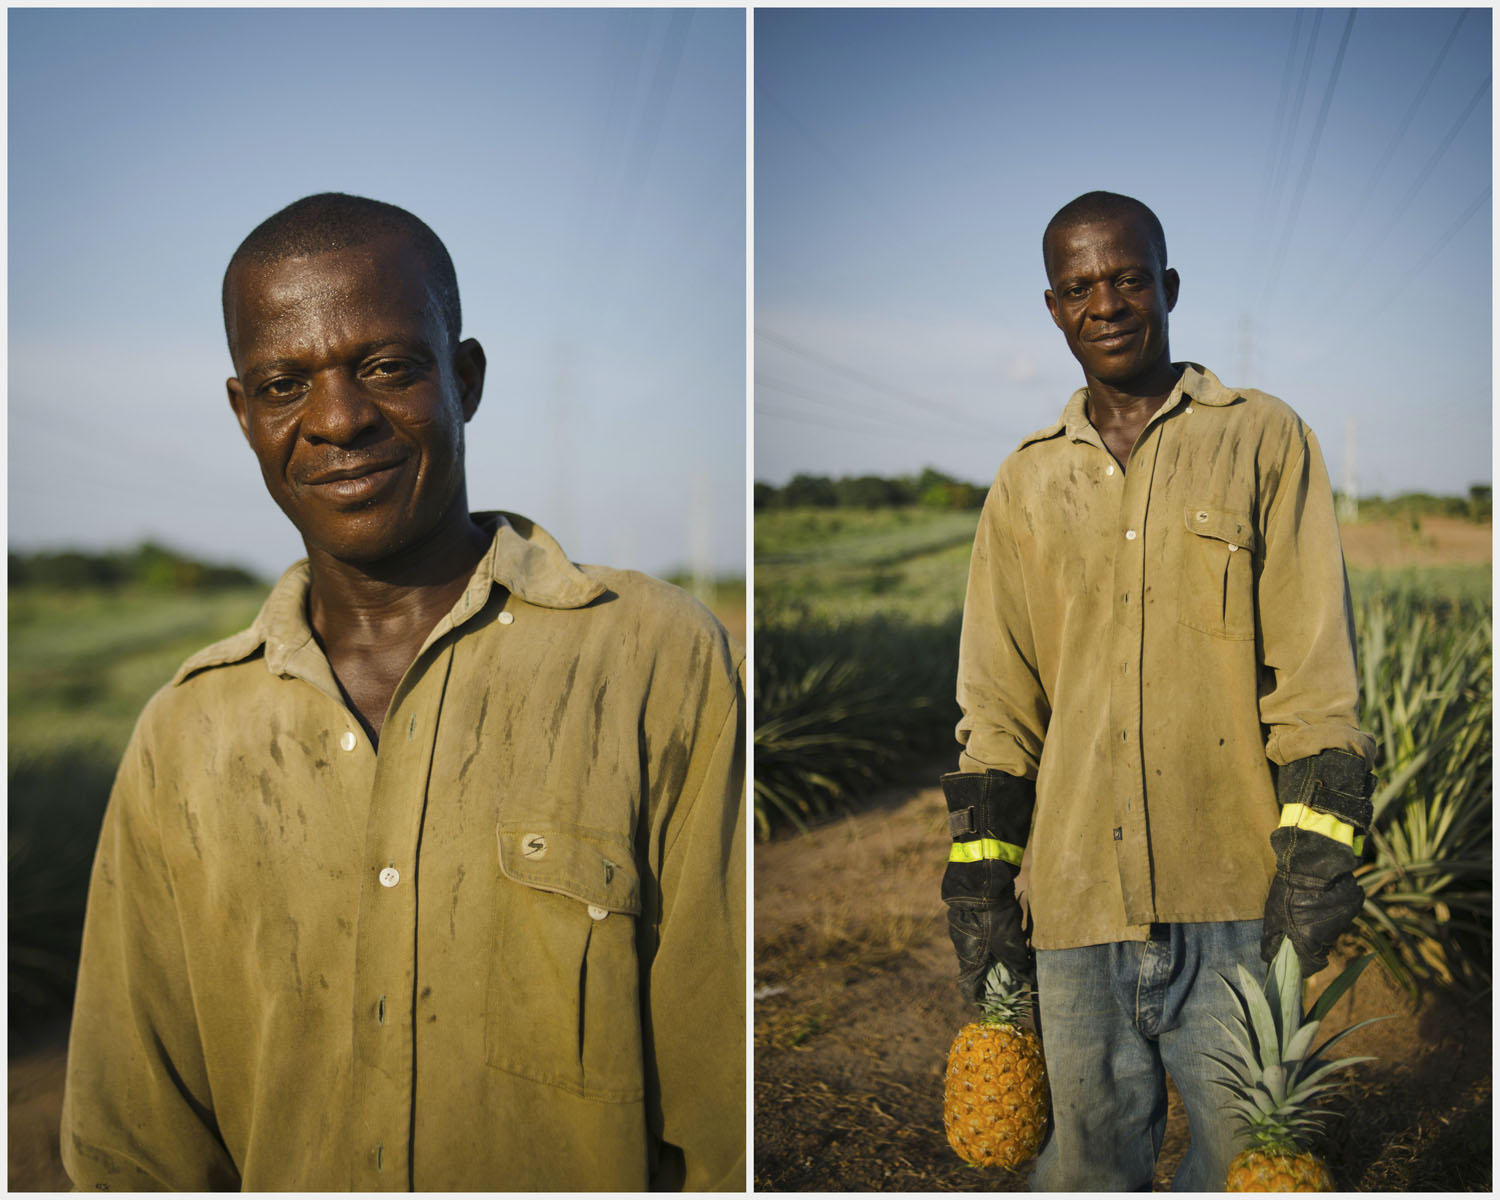 Sam. Pineapple Farm worker. Dominase, Ghana